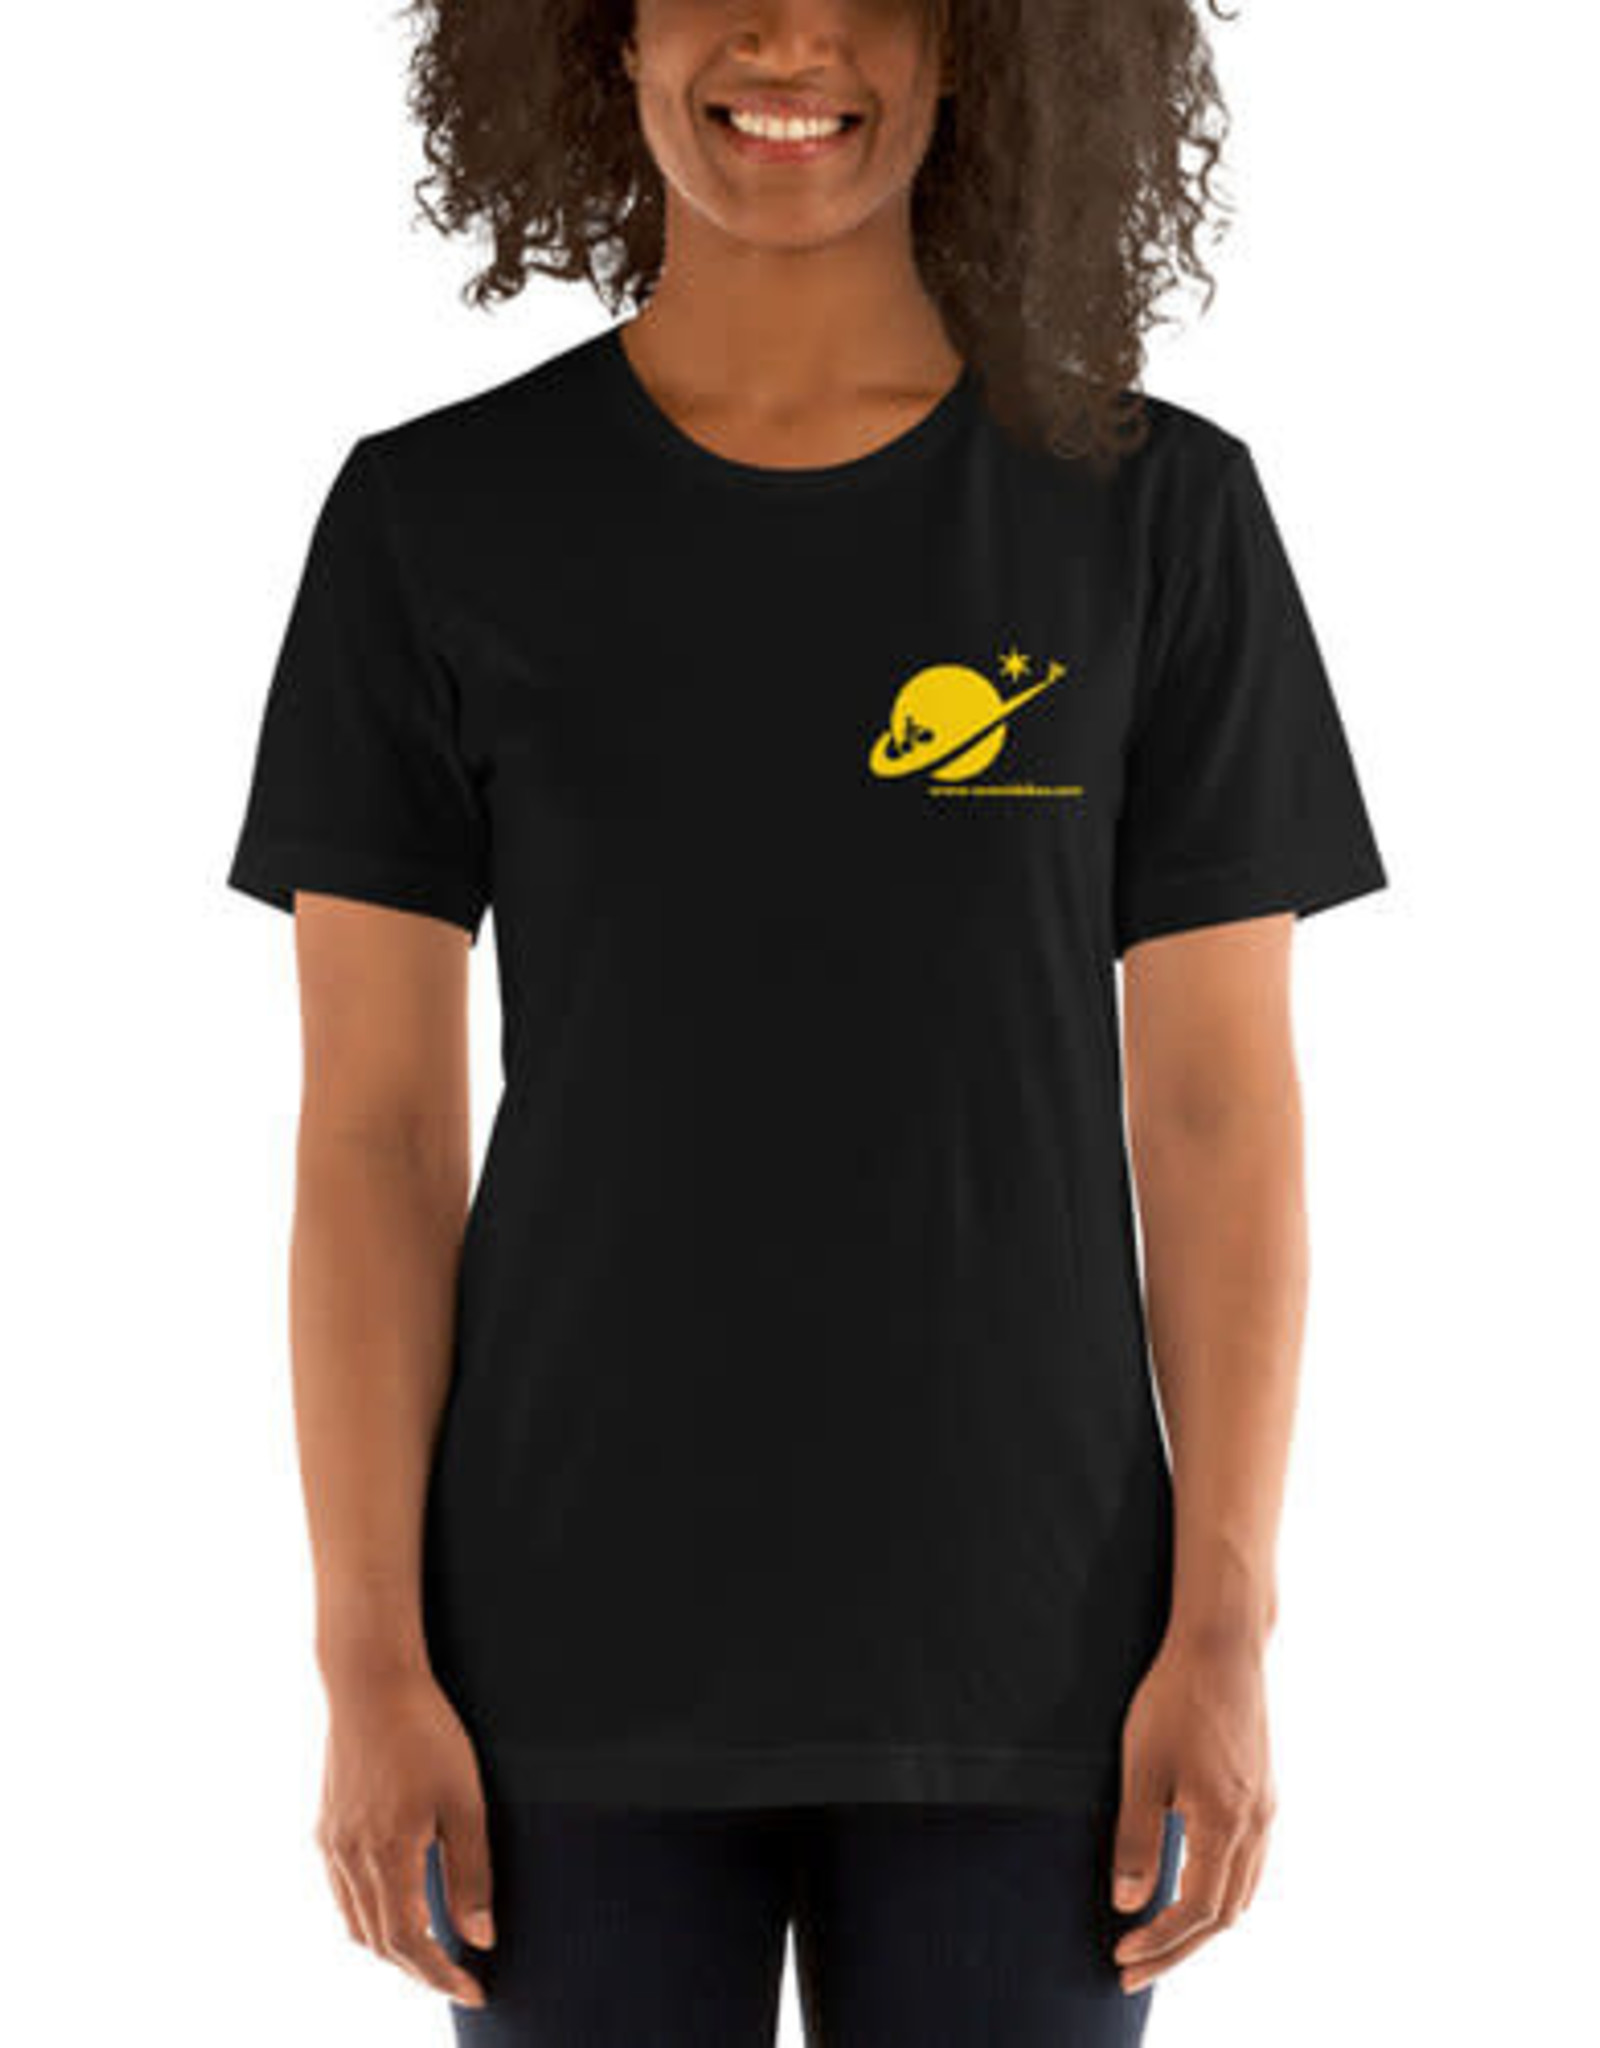 Get Out There Shop T-Shirt